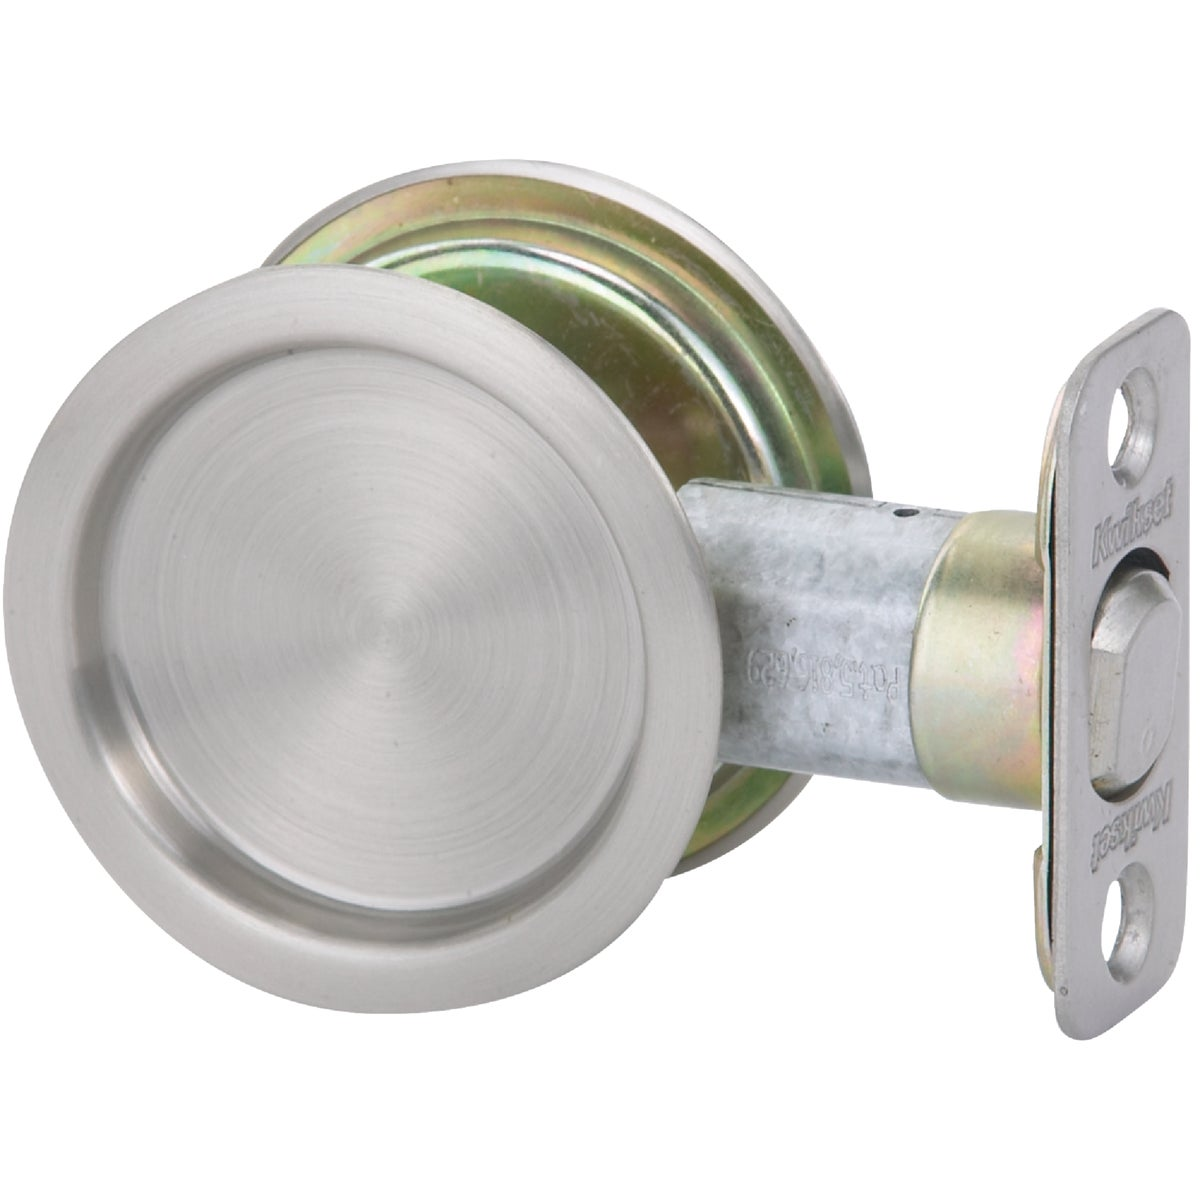 Kwikset SN PASS POCKET DOOR PULL 334 15